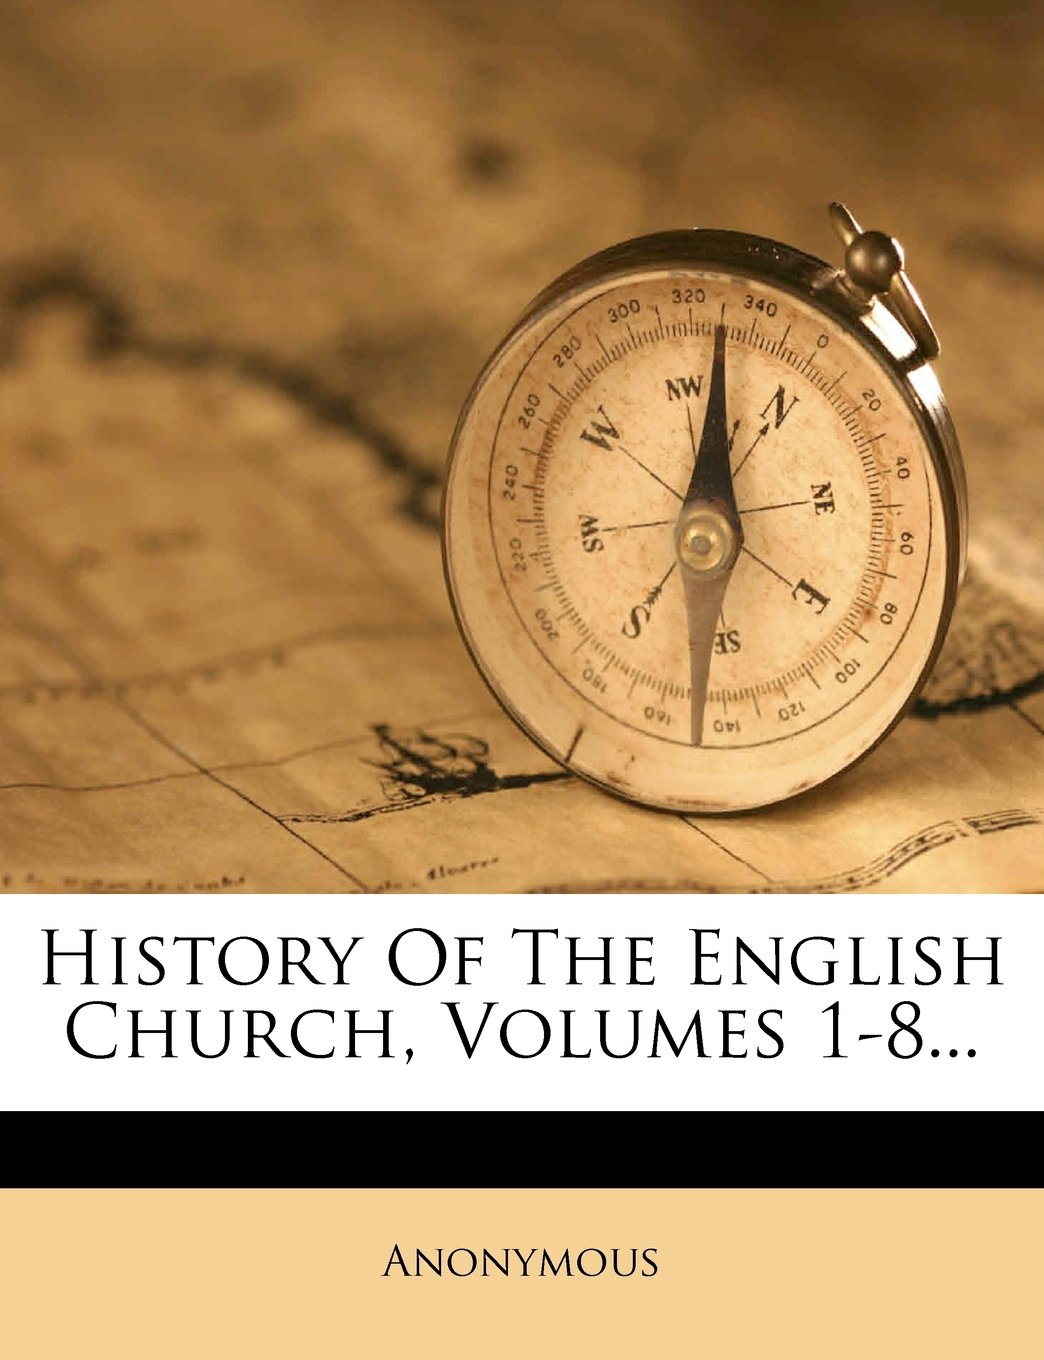 History of the English Church, Volumes 1-8... PDF